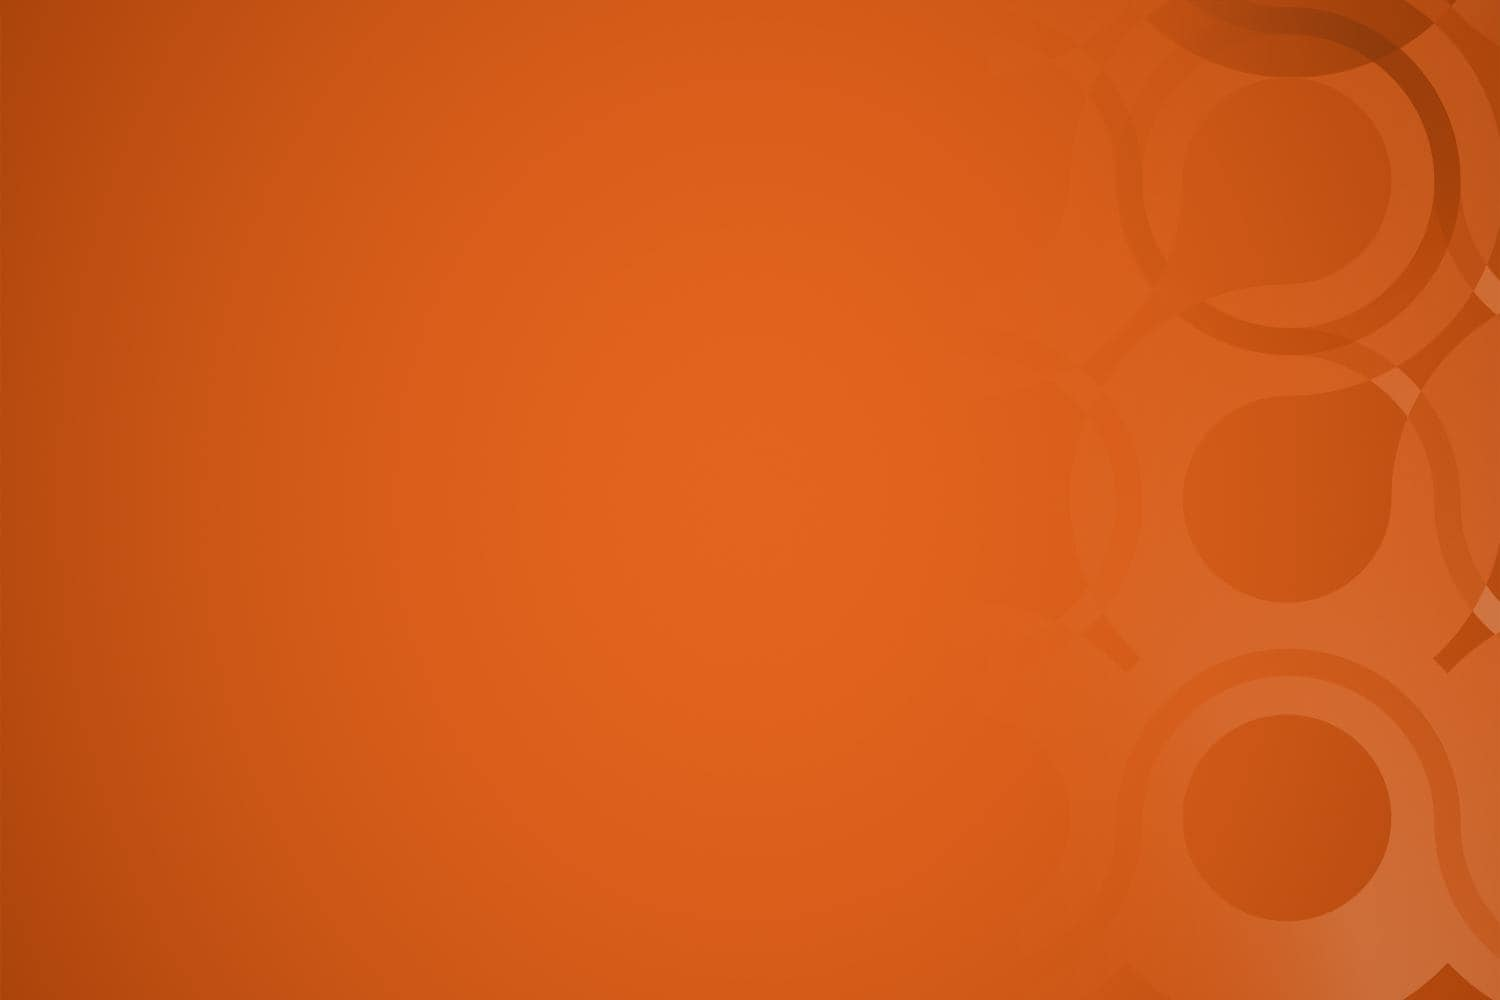 Abstract loop art on orange background